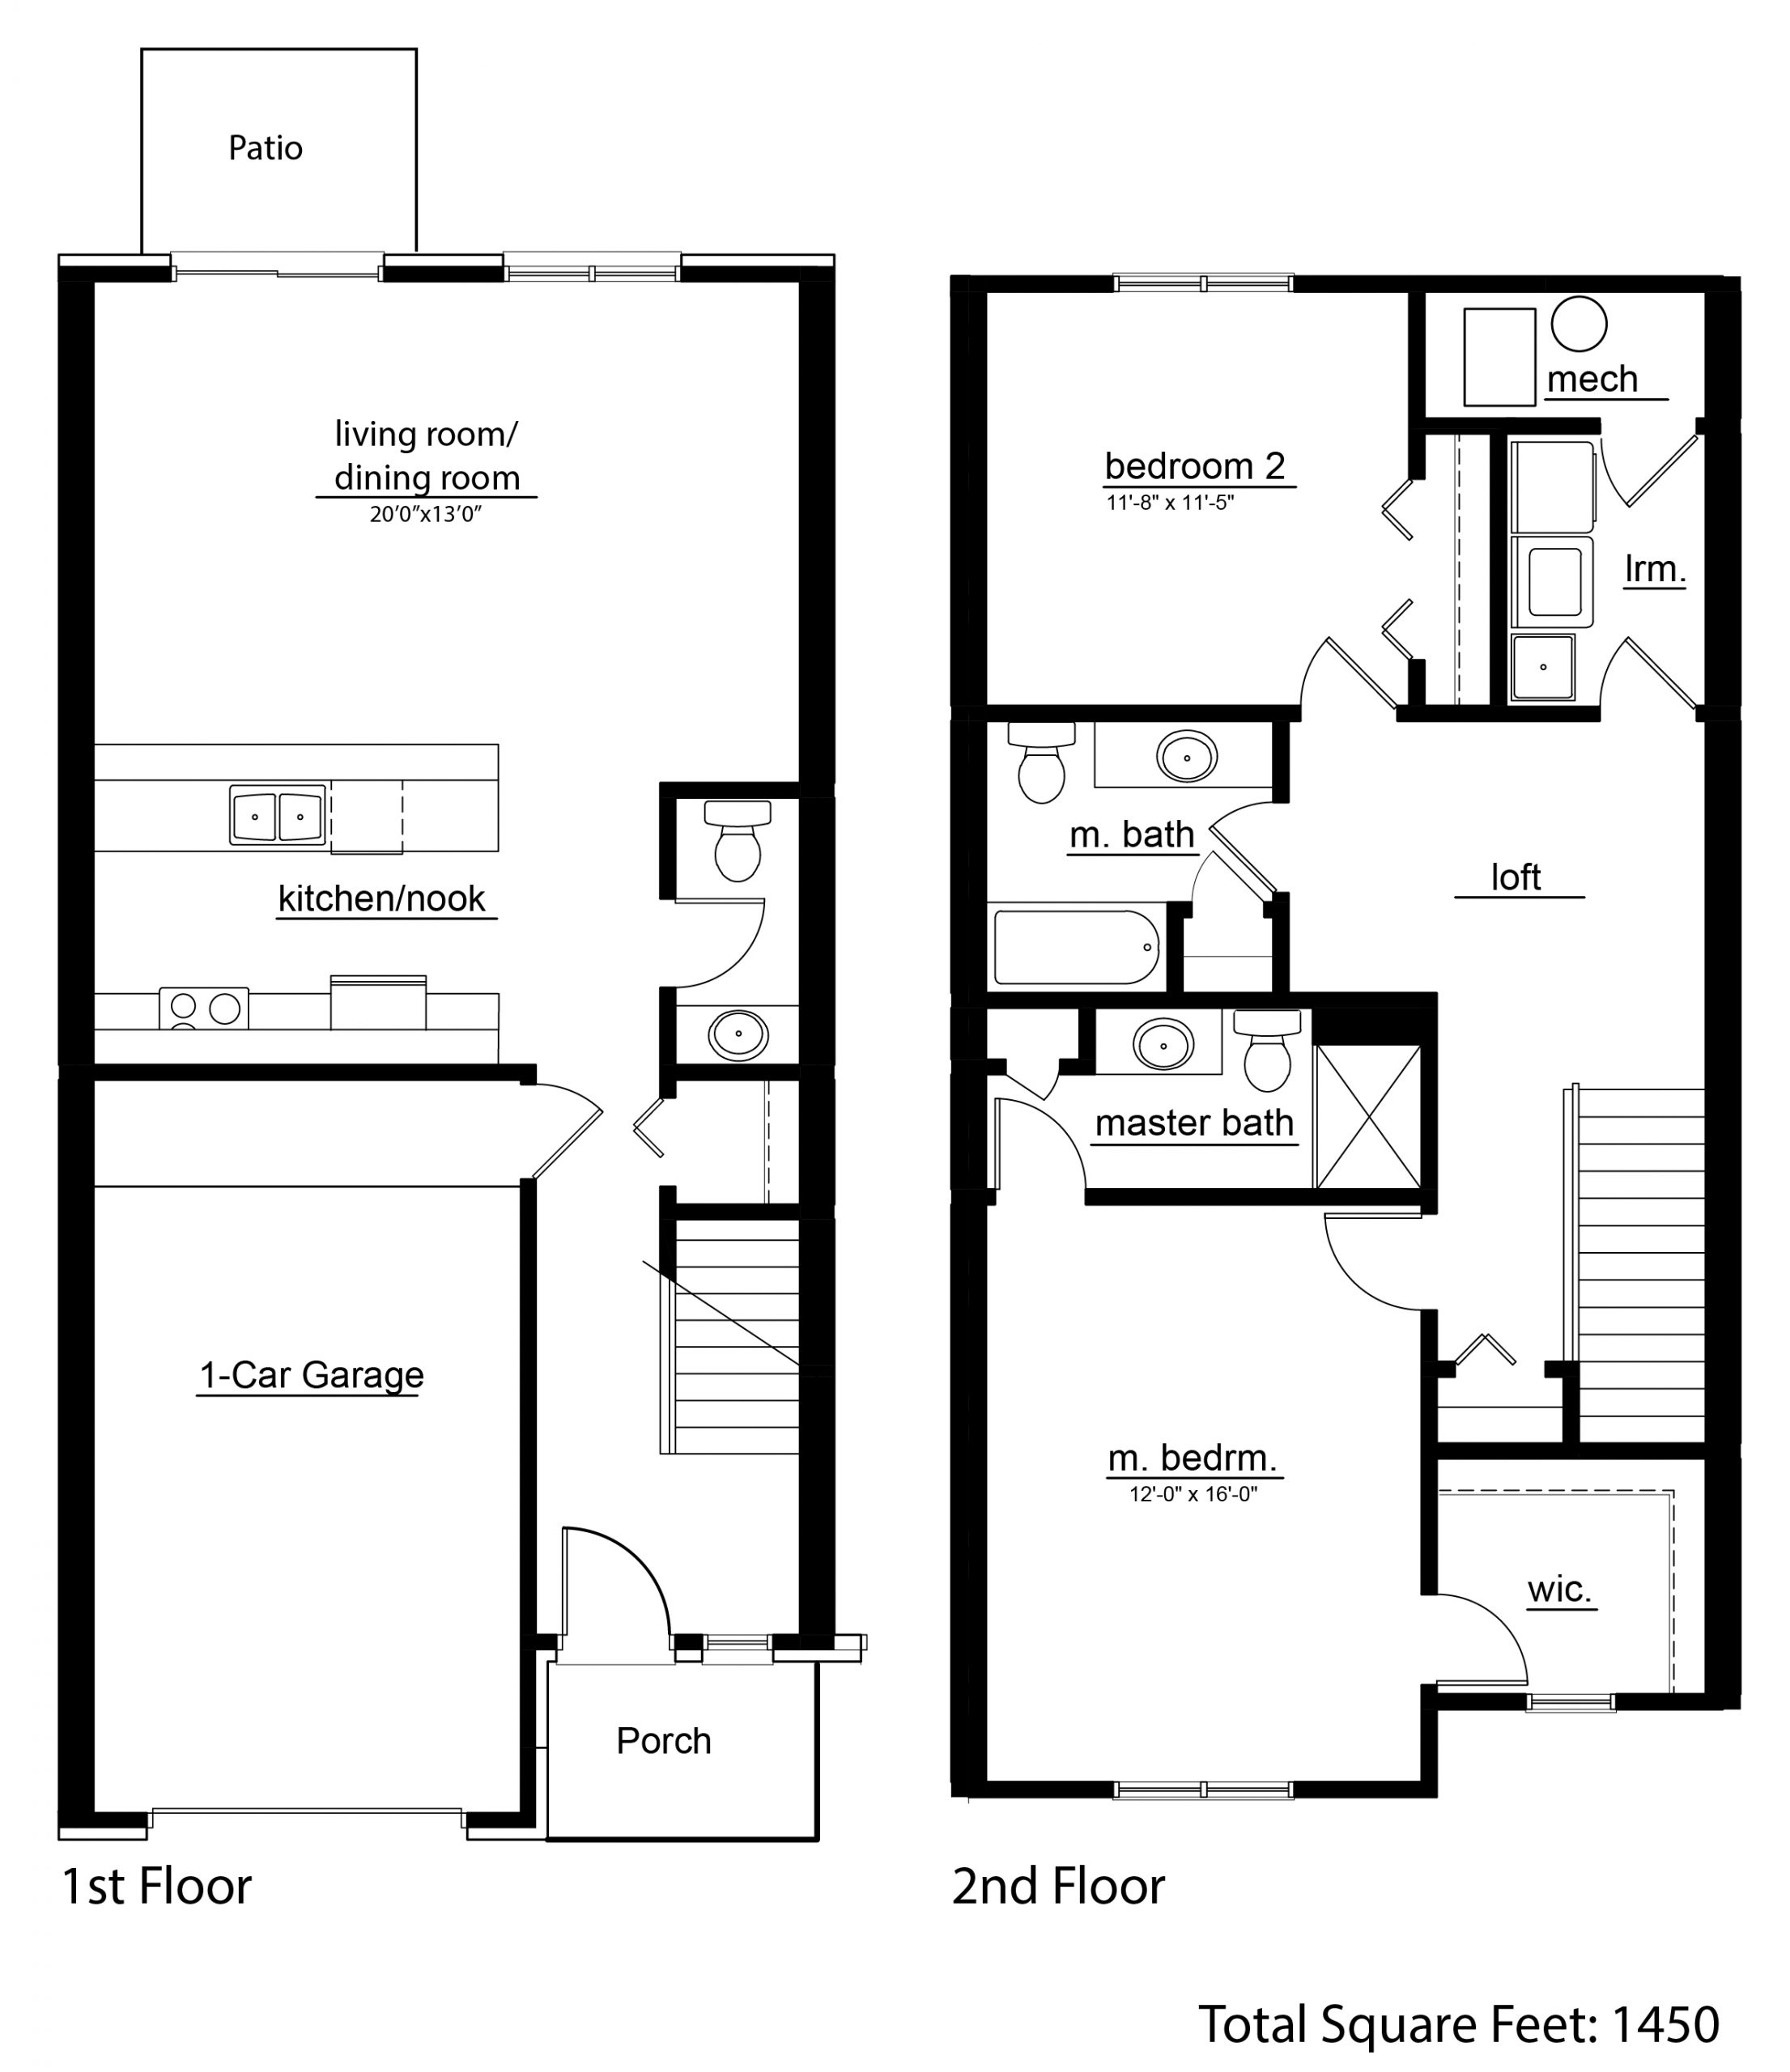 Floor Plan CAD View